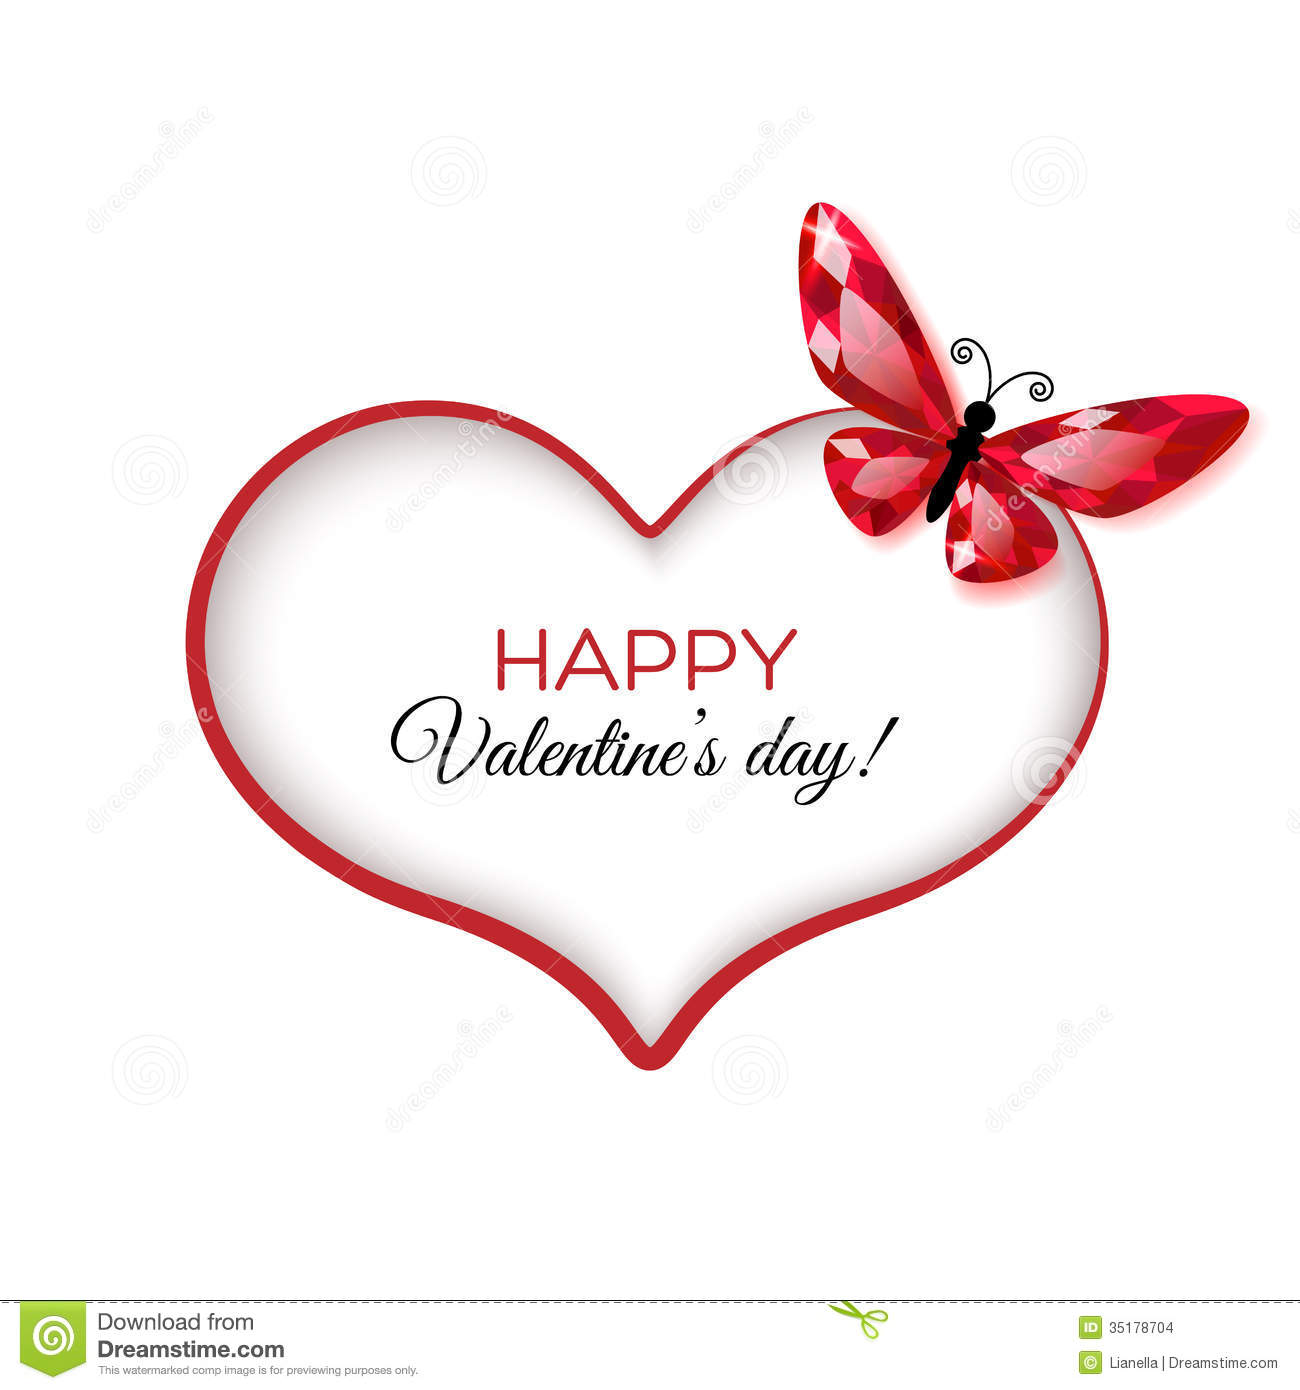 Happy valentines day greeting card stock vector illustration of download comp m4hsunfo